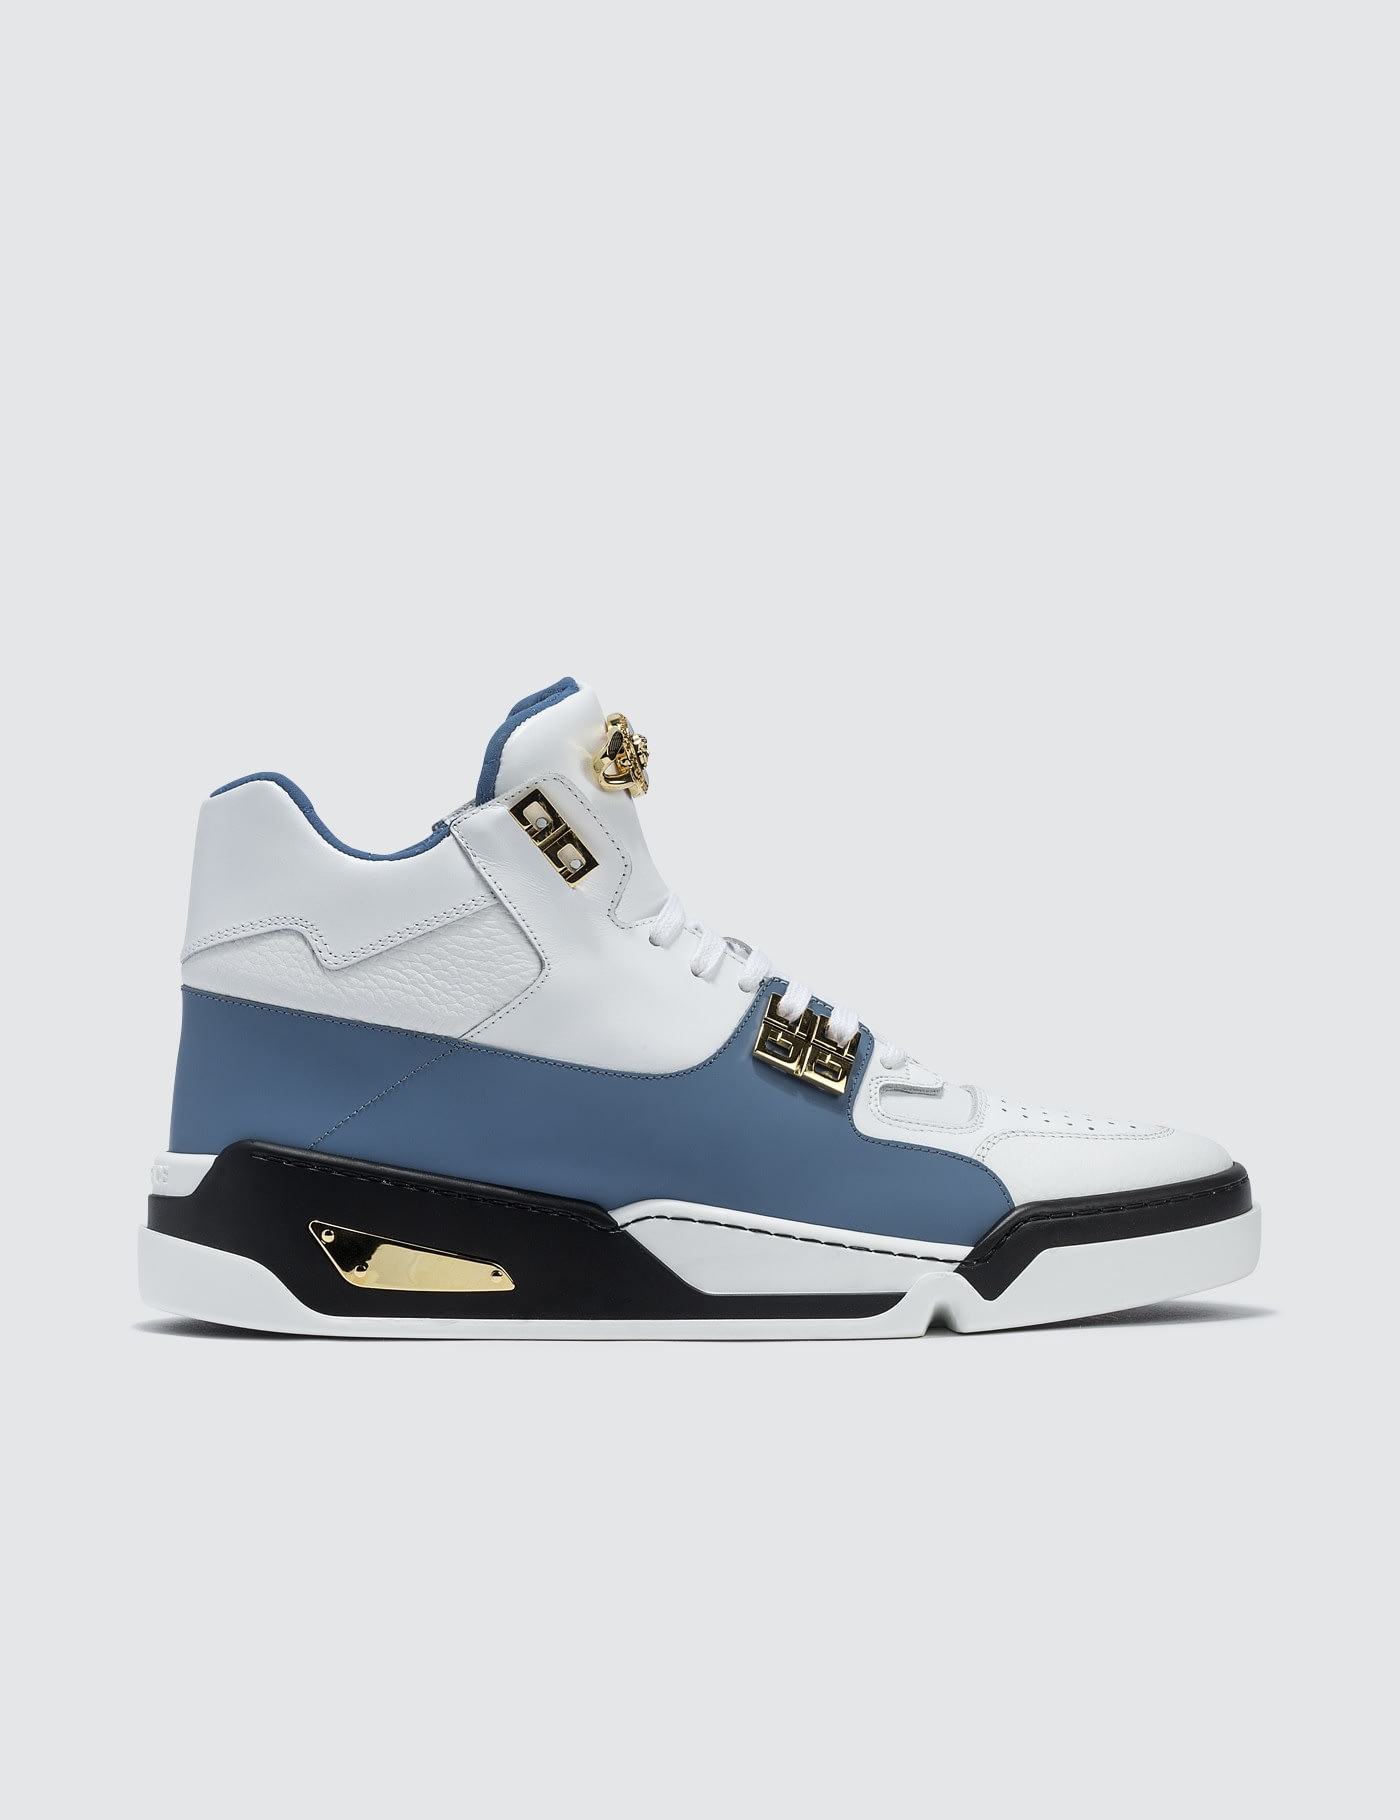 a1f690314 Buy Original Versace High Top Basketball Sneakers at Indonesia ...